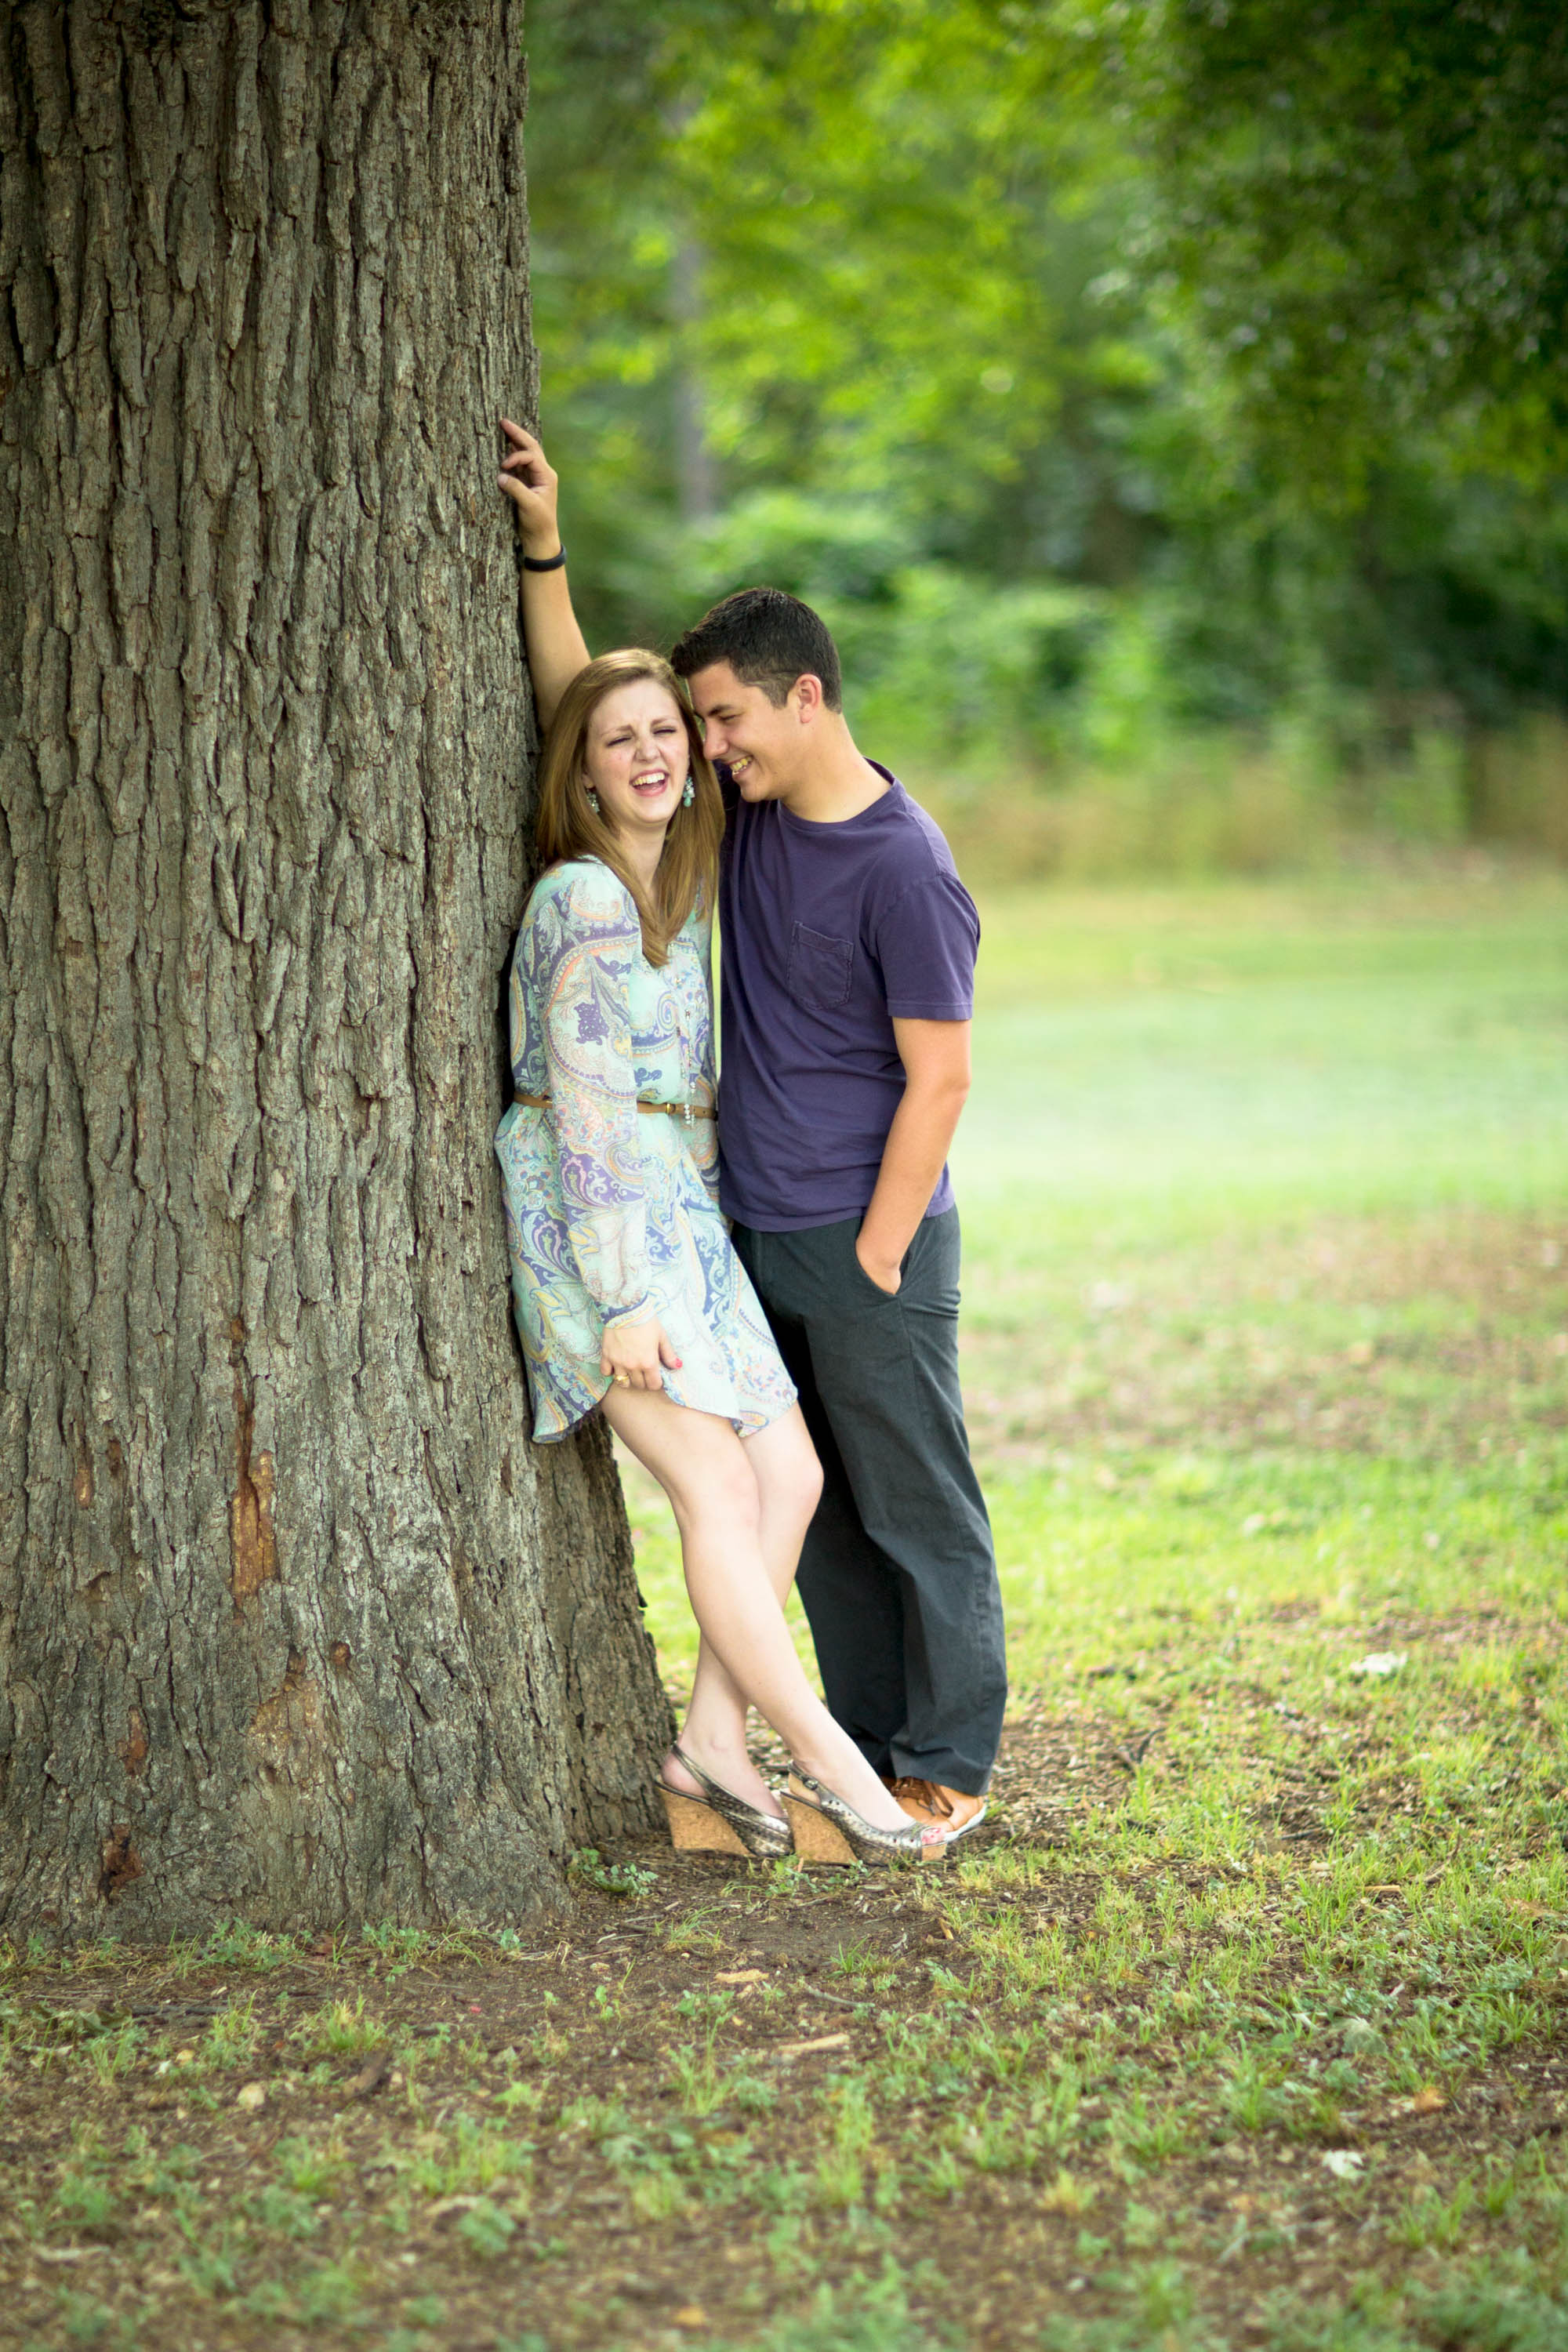 Wedding-Photographer-Dallas-Engagement-Portrait-Amanda-Robby-Tree.jpg